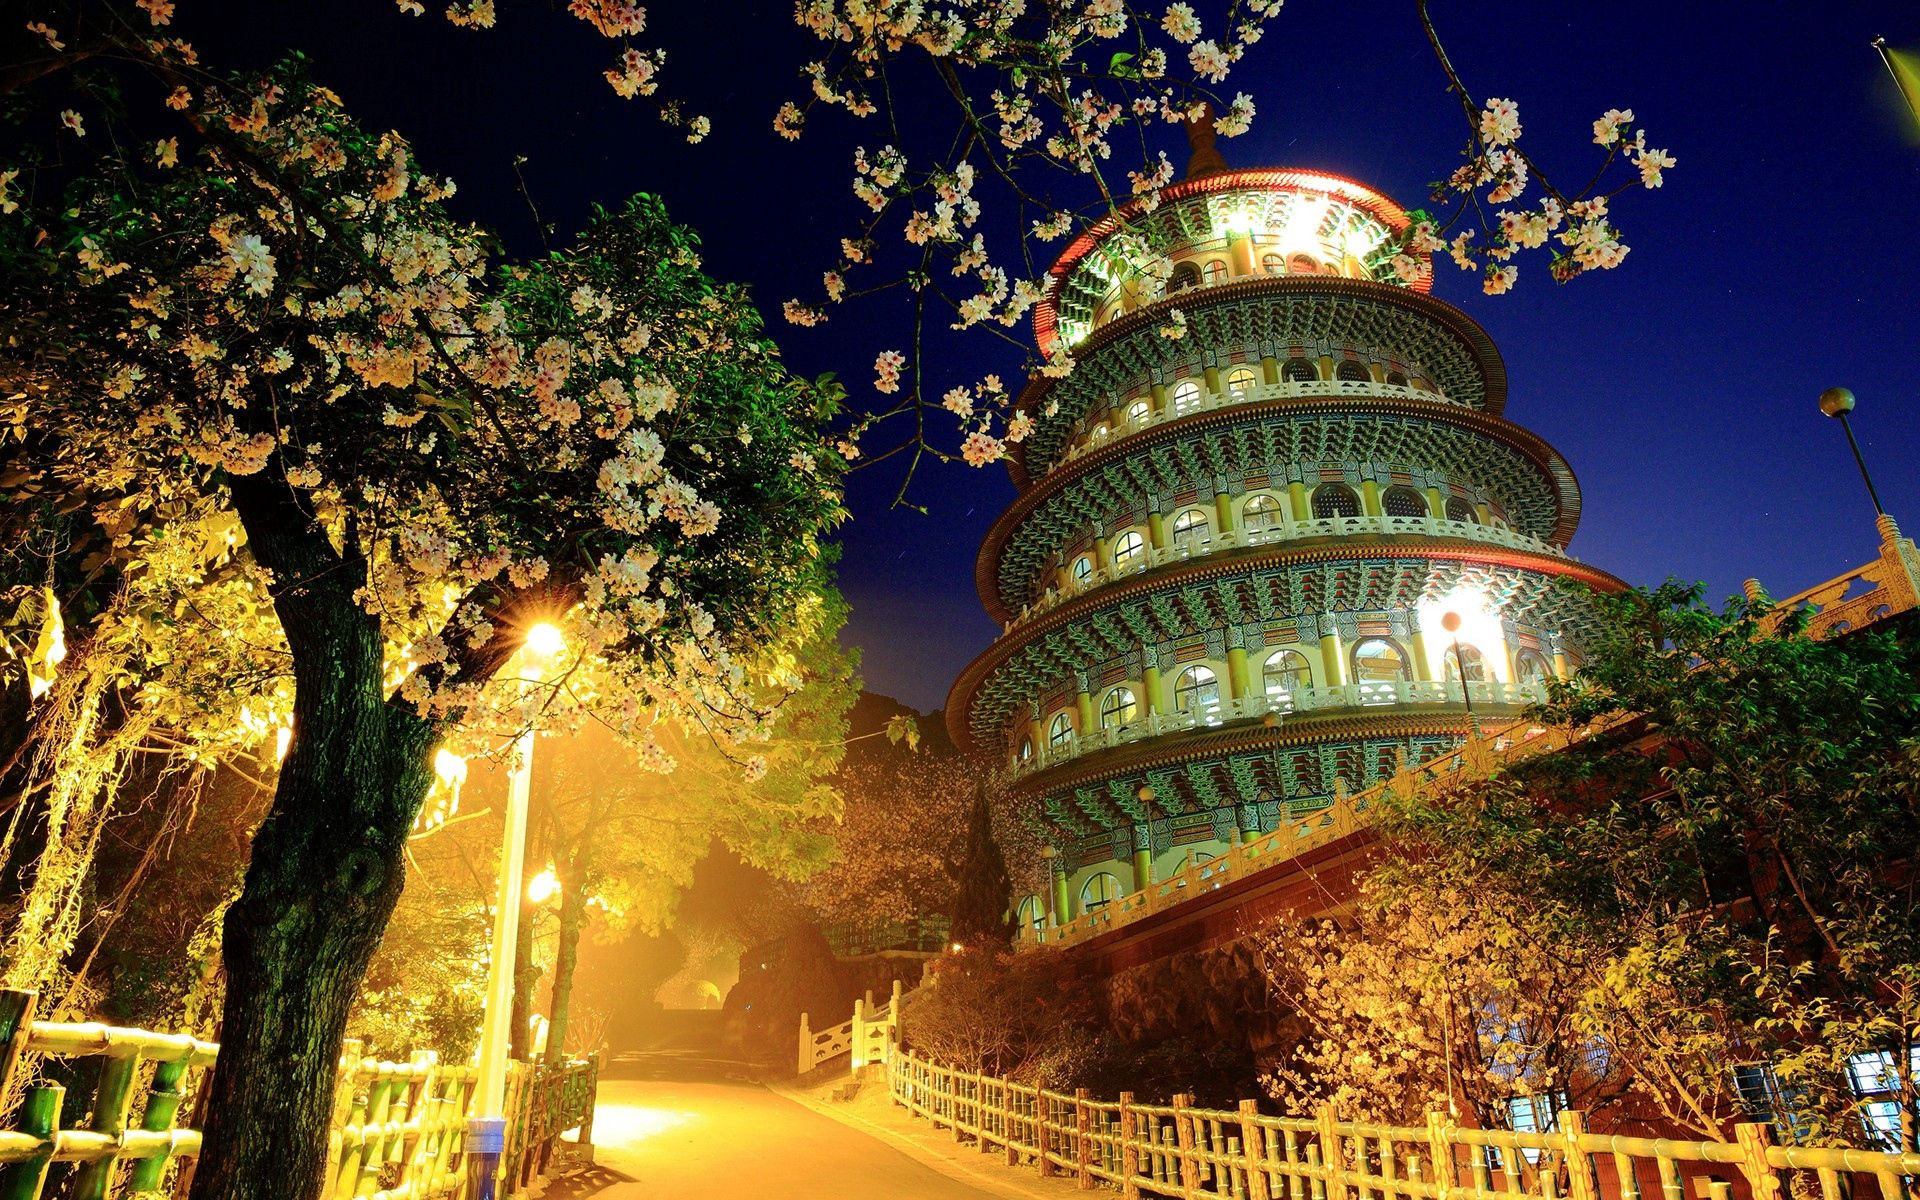 78210 free wallpaper 1080x2400 for phone, download images Cities, Trees, Building, Evening, China 1080x2400 for mobile